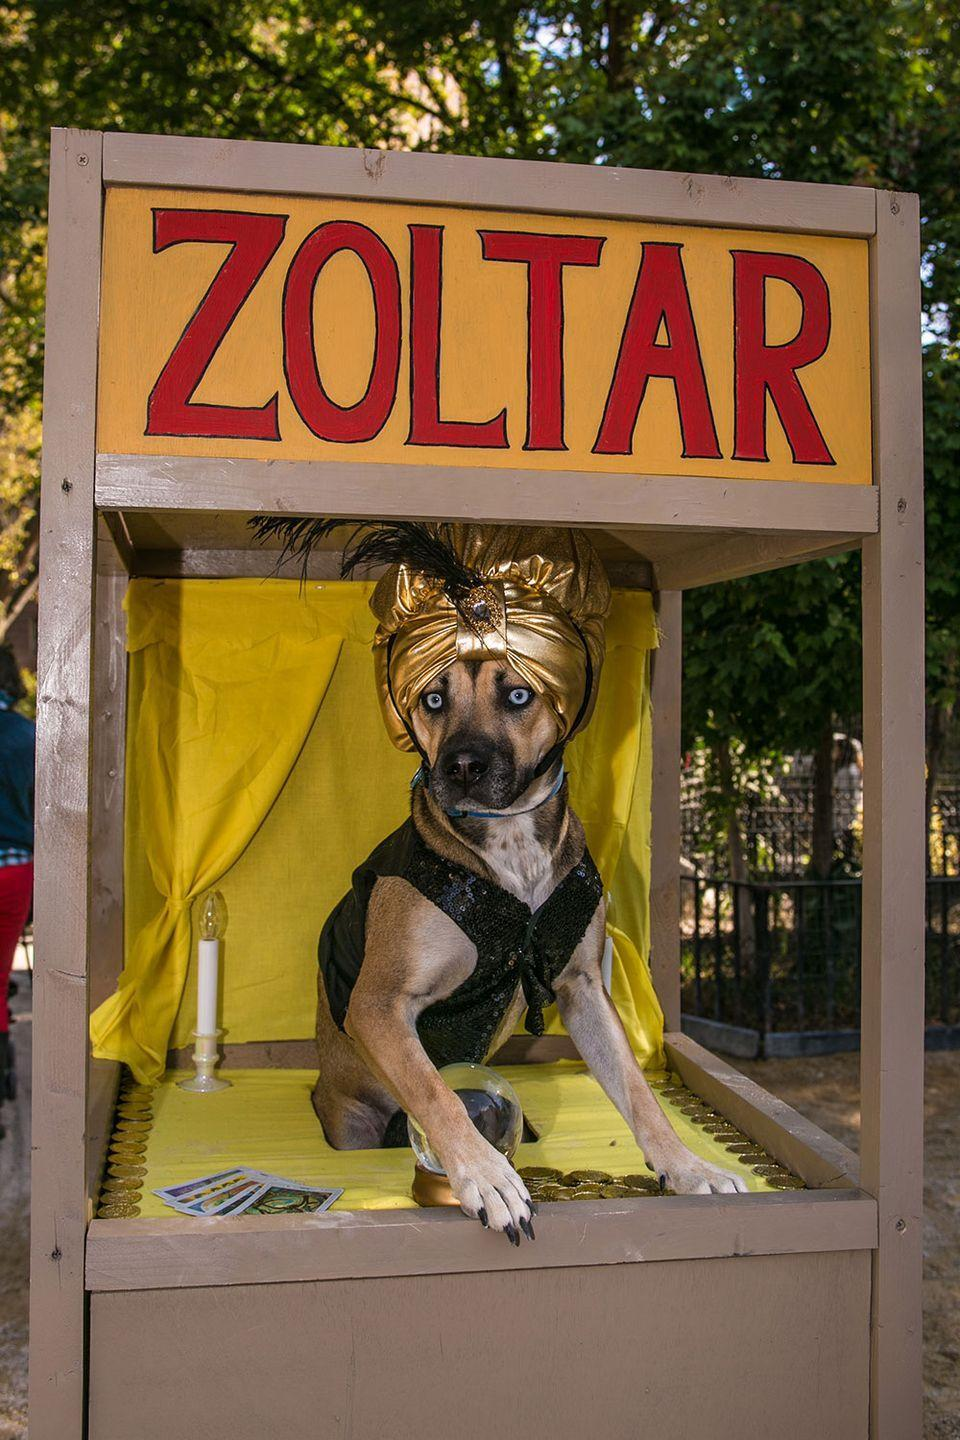 "<p>This fortune teller sees lots of fetch in your future.</p><p><strong>RELATED: </strong><a href=""https://www.goodhousekeeping.com/holidays/halloween-ideas/g1784/popular-pet-halloween-costumes/"" rel=""nofollow noopener"" target=""_blank"" data-ylk=""slk:The 35 Best Dog and Puppy Costume Ideas for Halloween This Year"" class=""link rapid-noclick-resp"">The 35 Best Dog and Puppy Costume Ideas for Halloween This Year</a></p>"